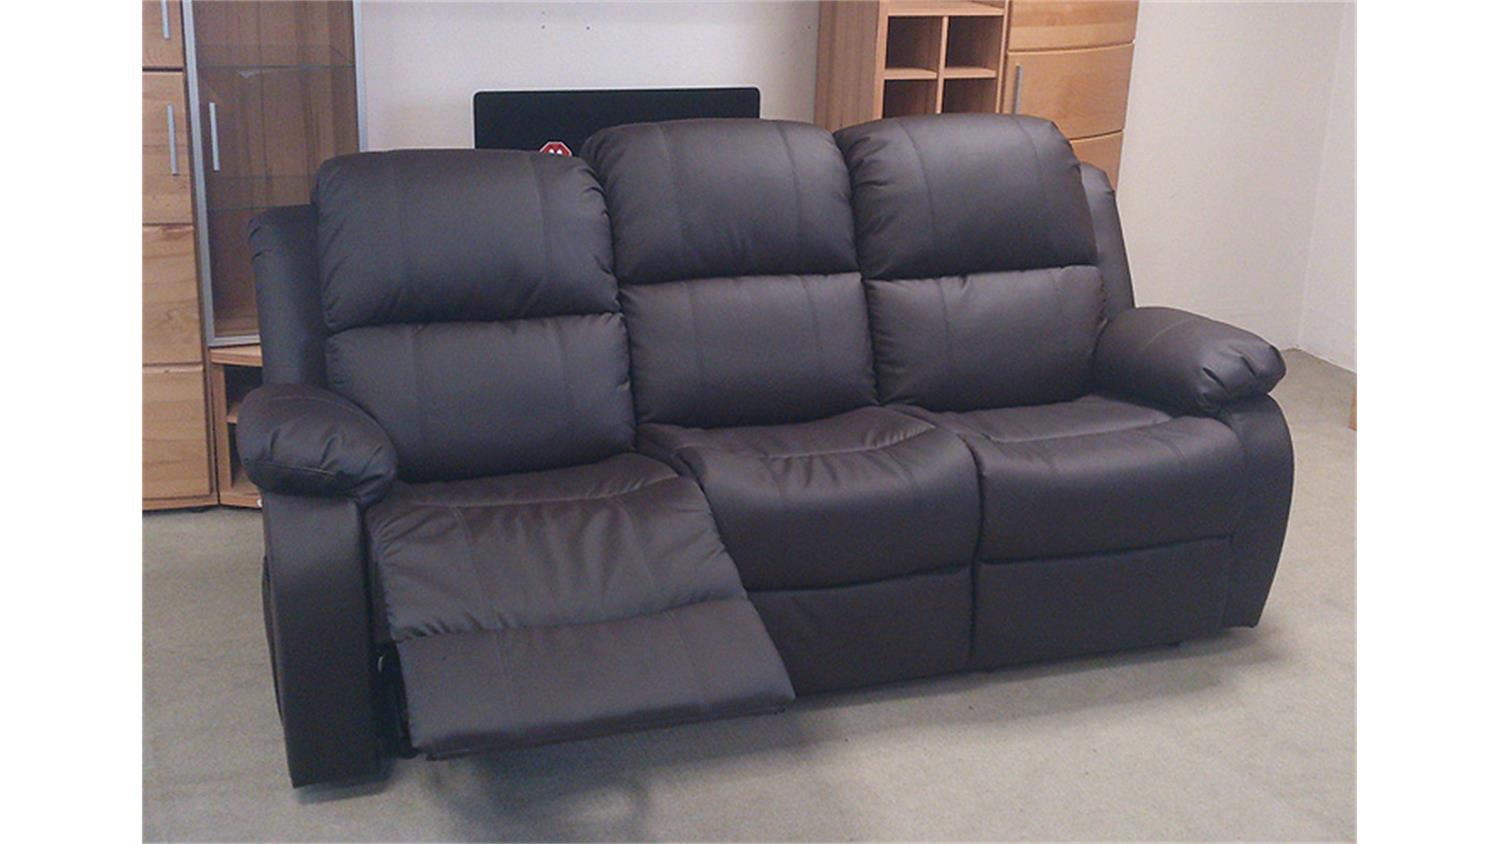 sofa rax 3 sitzer polstercouch in braun mit relaxfunktion. Black Bedroom Furniture Sets. Home Design Ideas